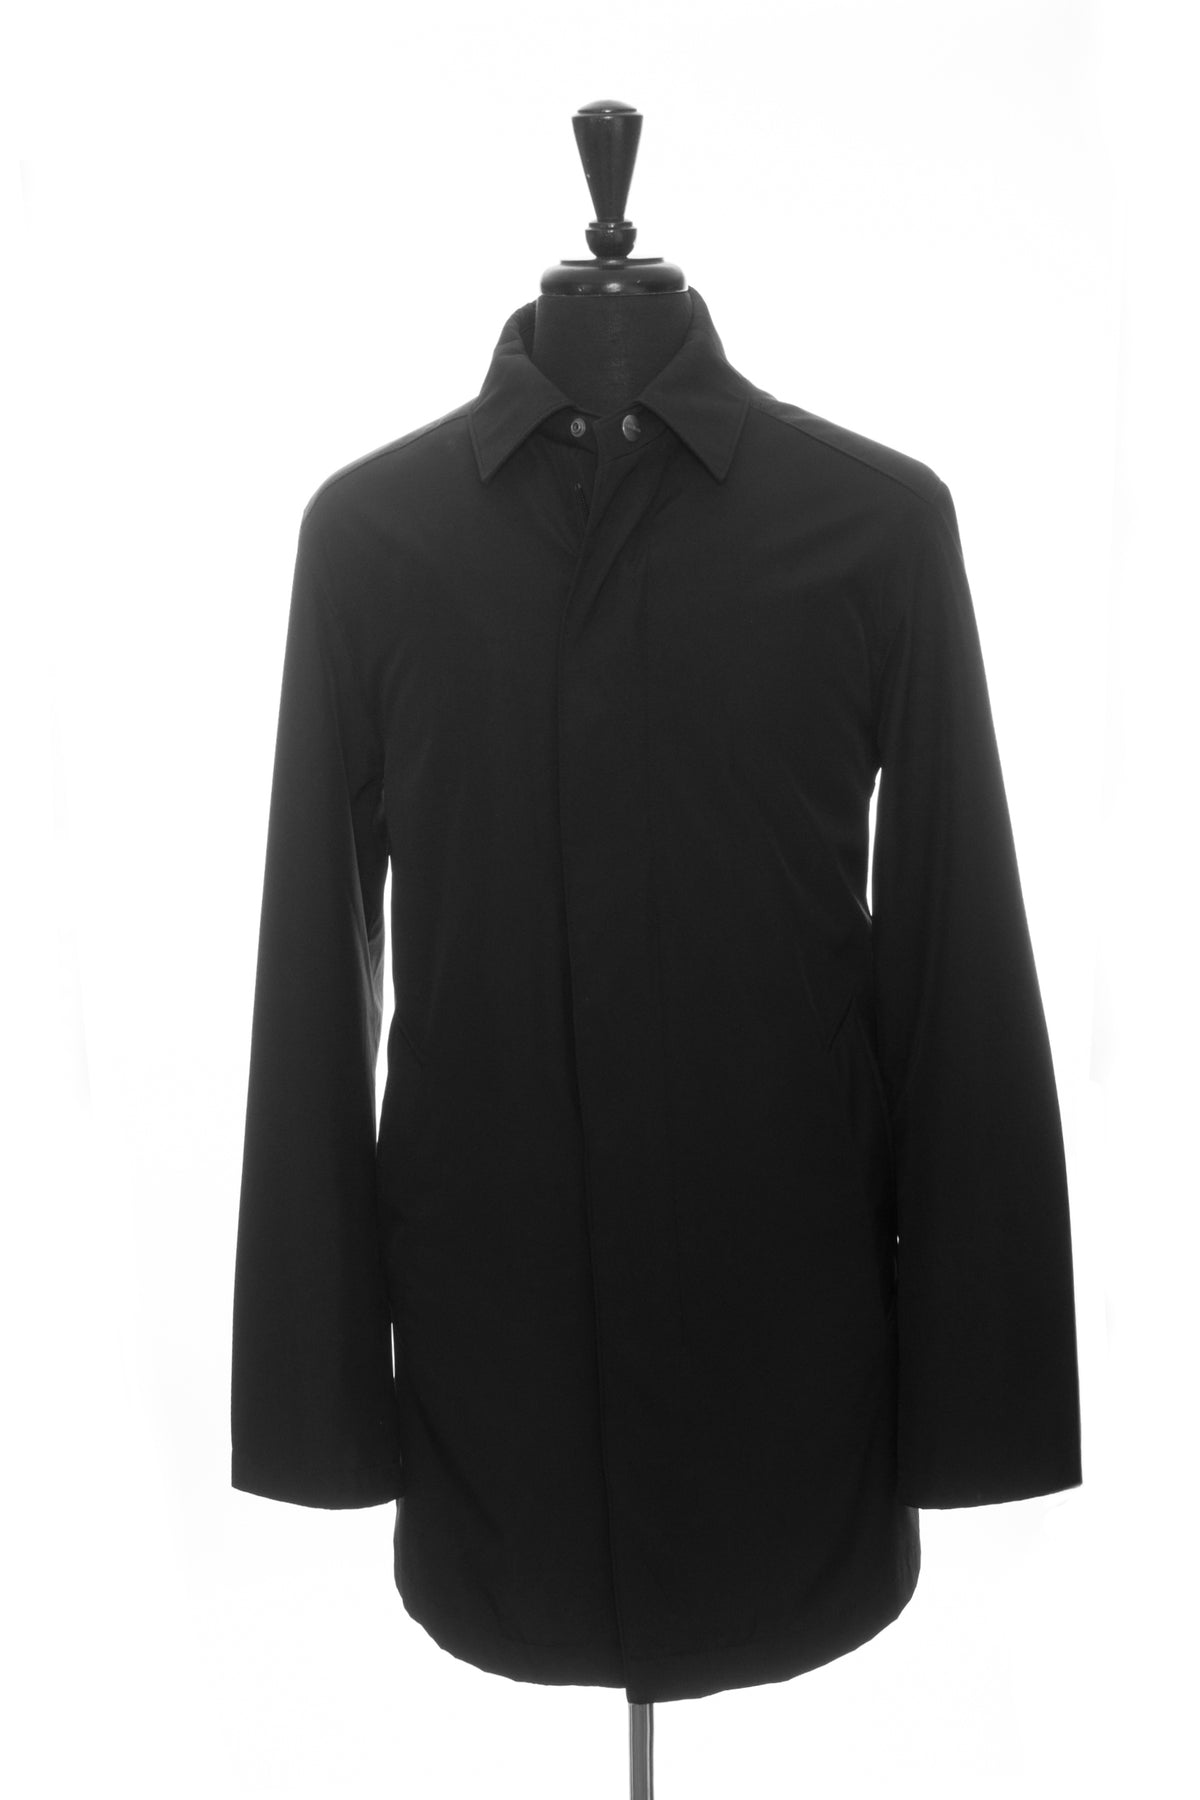 Strellson Black Business Class Fly Coat